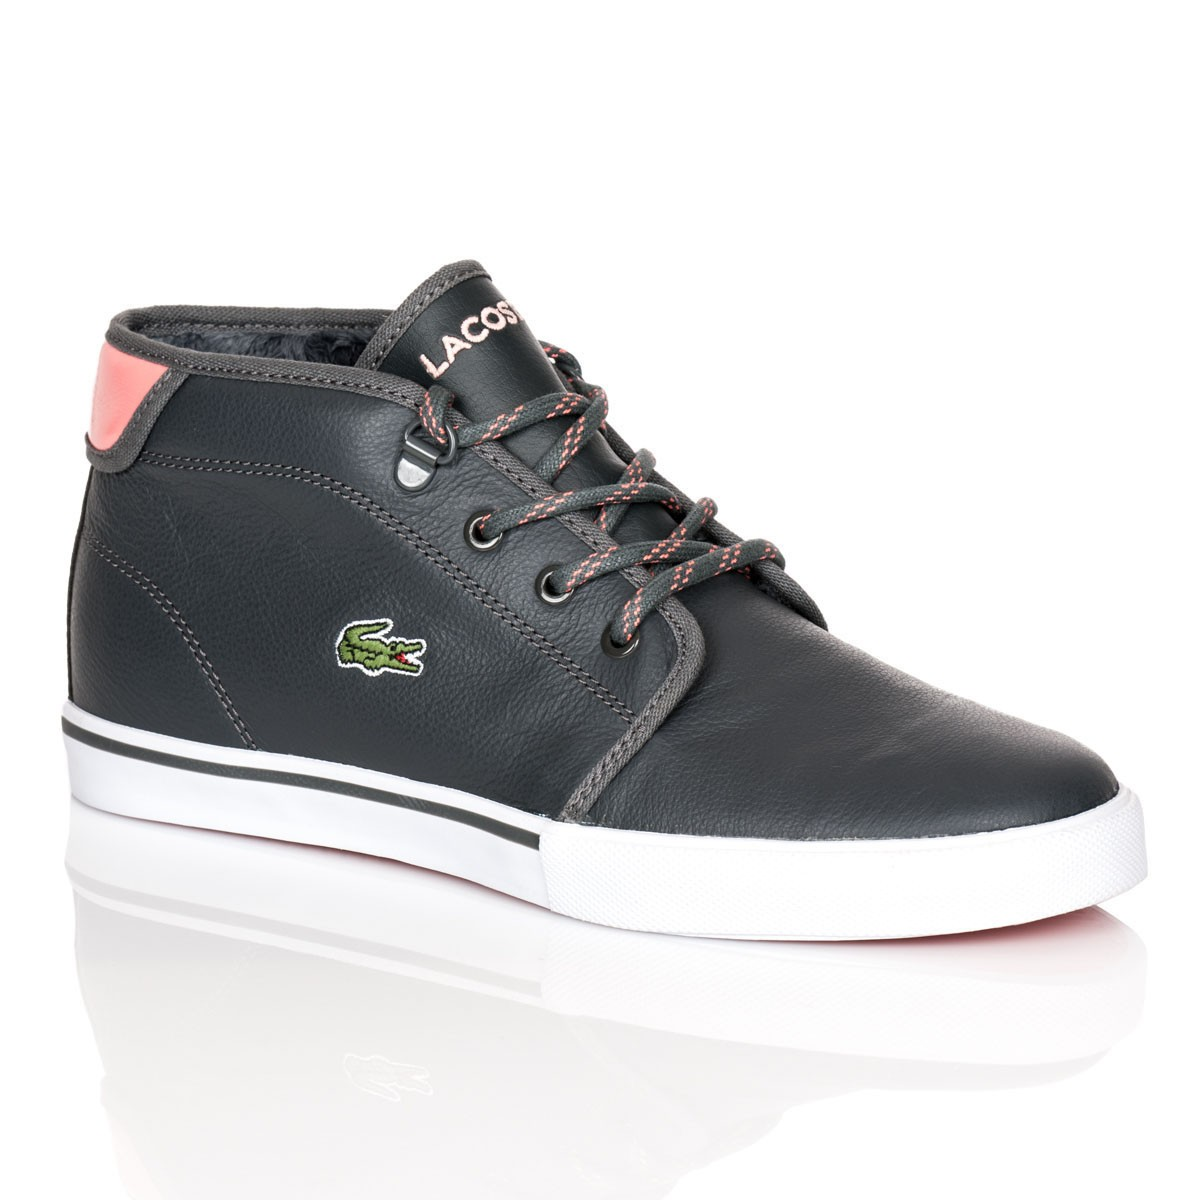 lacoste damen sneaker ampthill nso gr 36 freizeitschuhe damen sneakers schuhe ebay. Black Bedroom Furniture Sets. Home Design Ideas